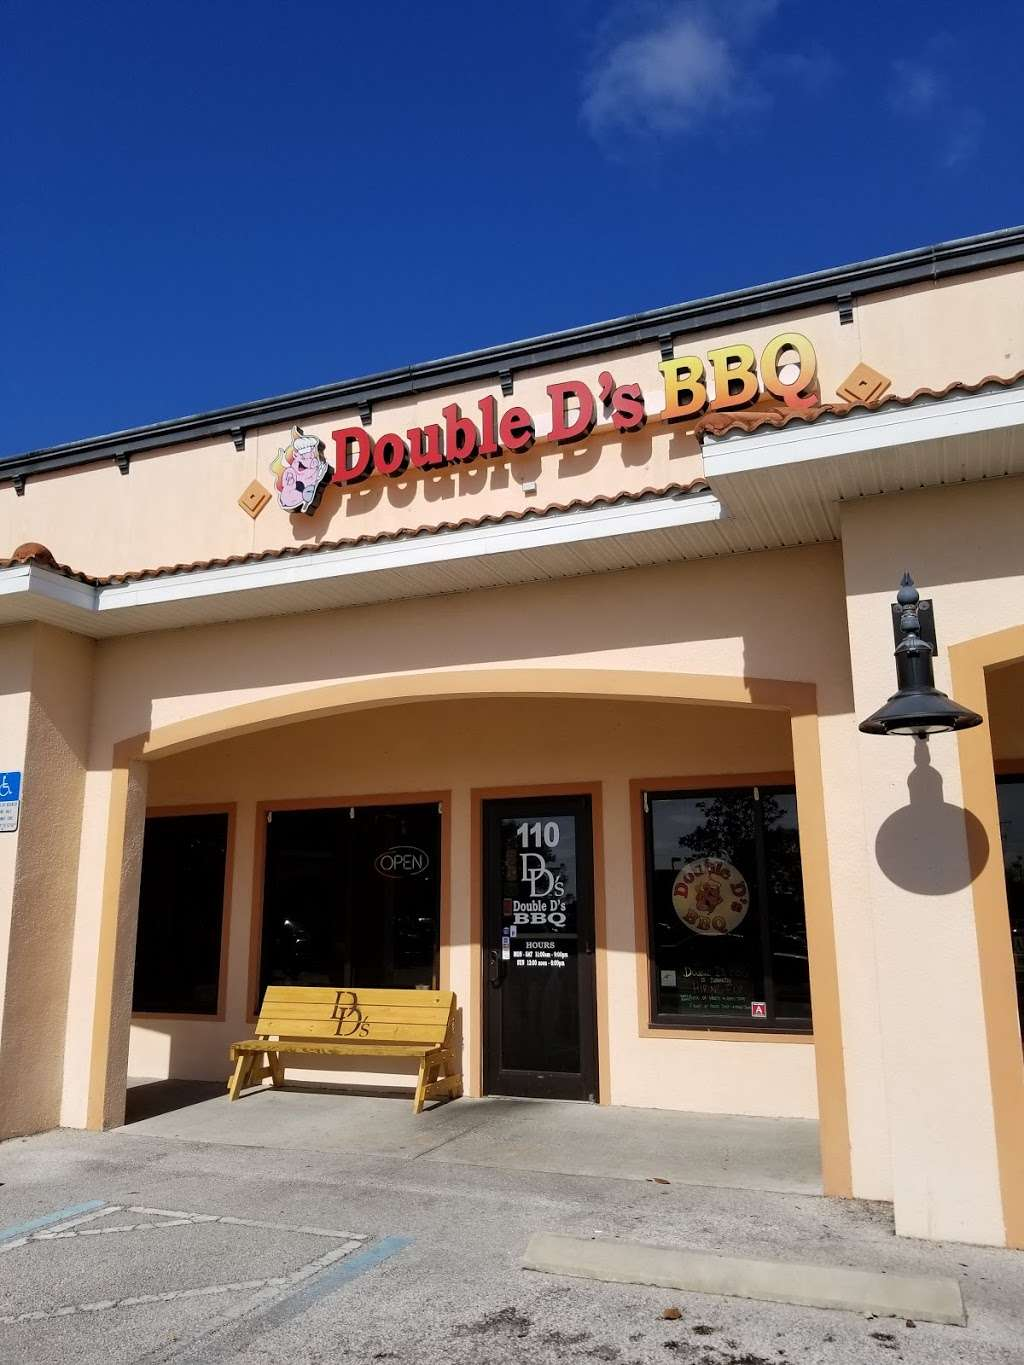 Double Ds BBQ - restaurant  | Photo 4 of 10 | Address: 634 Barnes Blvd #110, Rockledge, FL 32955, USA | Phone: (321) 298-6995